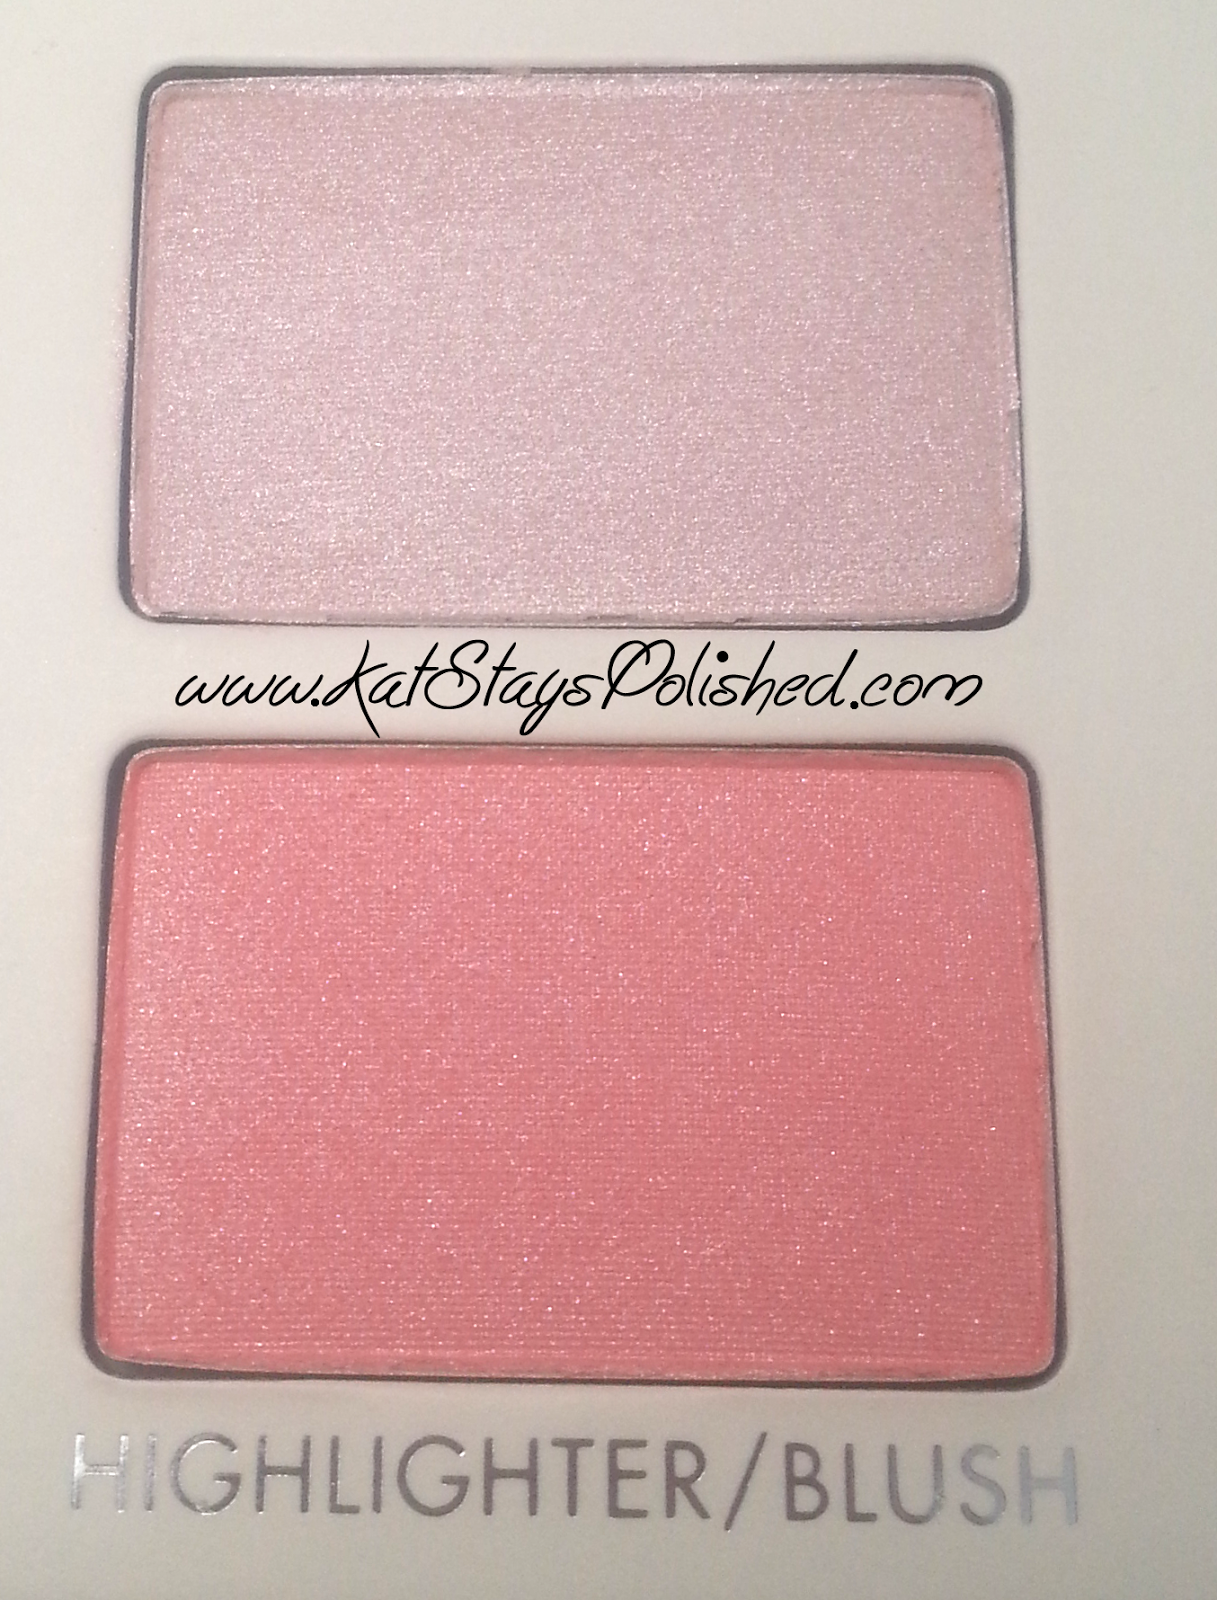 Lorac Mint Edition Palette - Highlighter and Blush